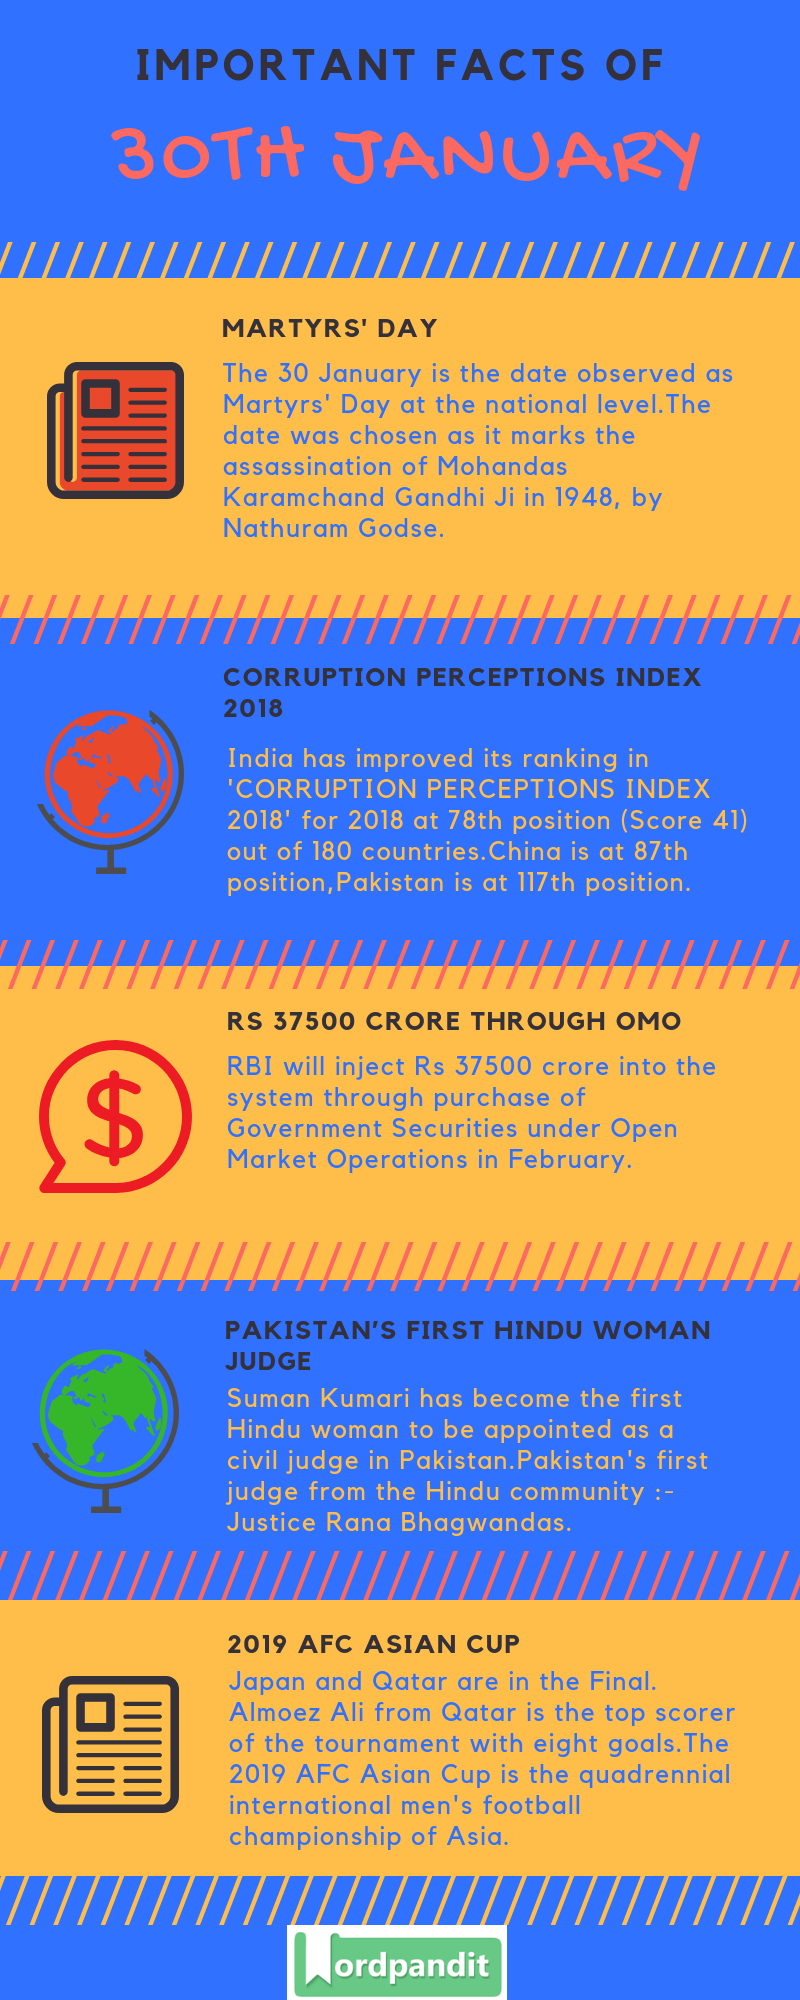 Daily Current Affairs 30 January 2019 Current Affairs Quiz 30 January 2019 Current Affairs Infographic